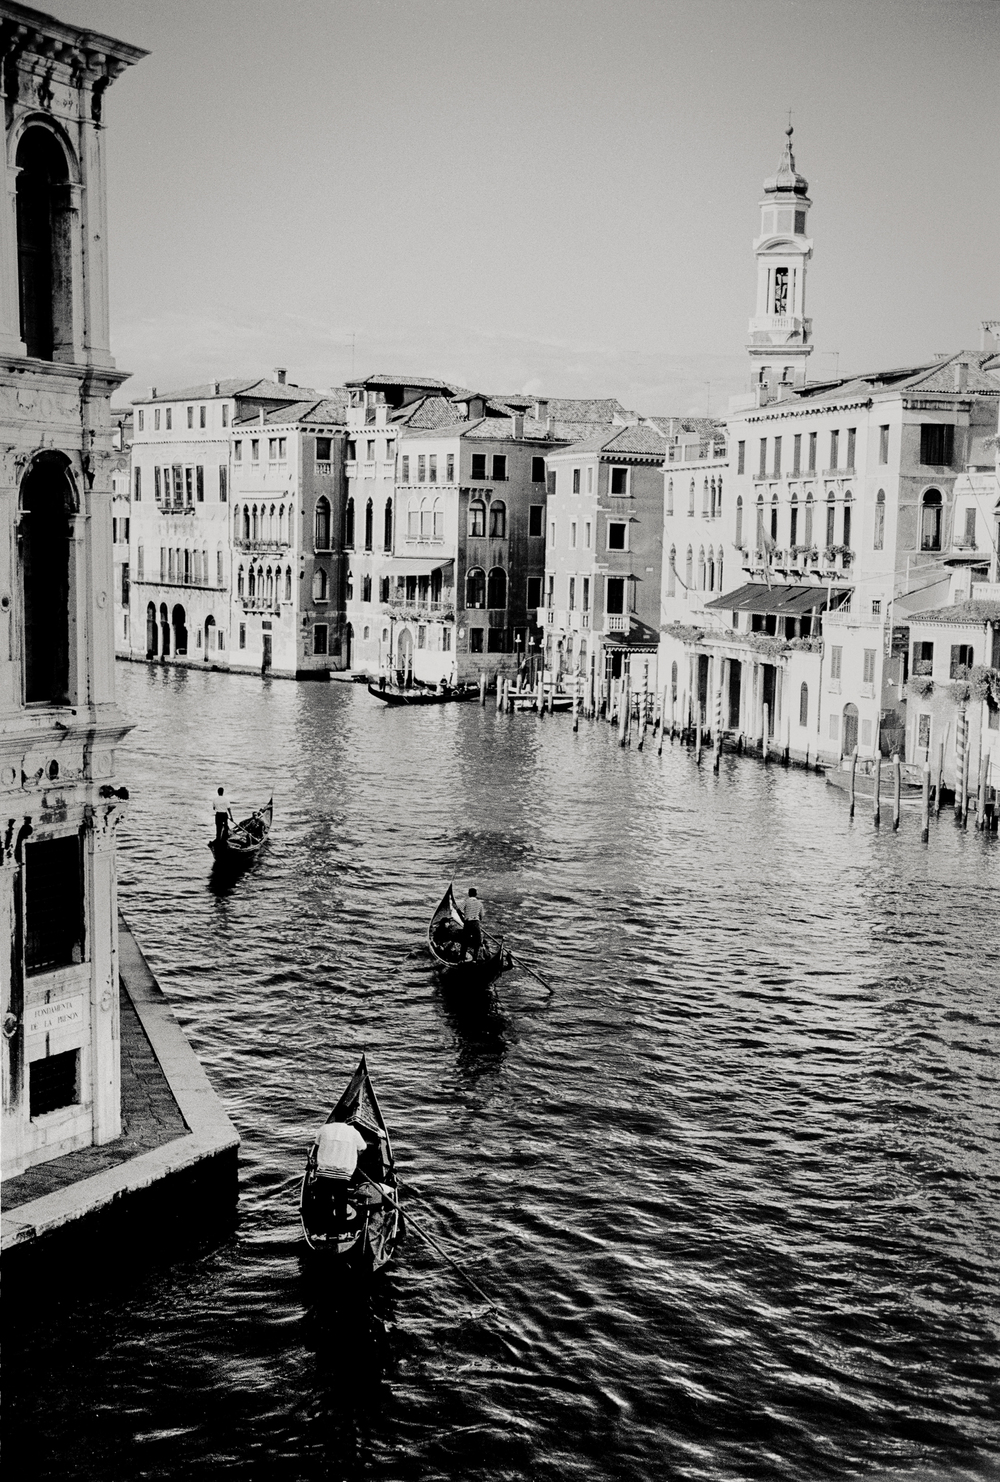 three gondolas, Venice, Italy 2001.